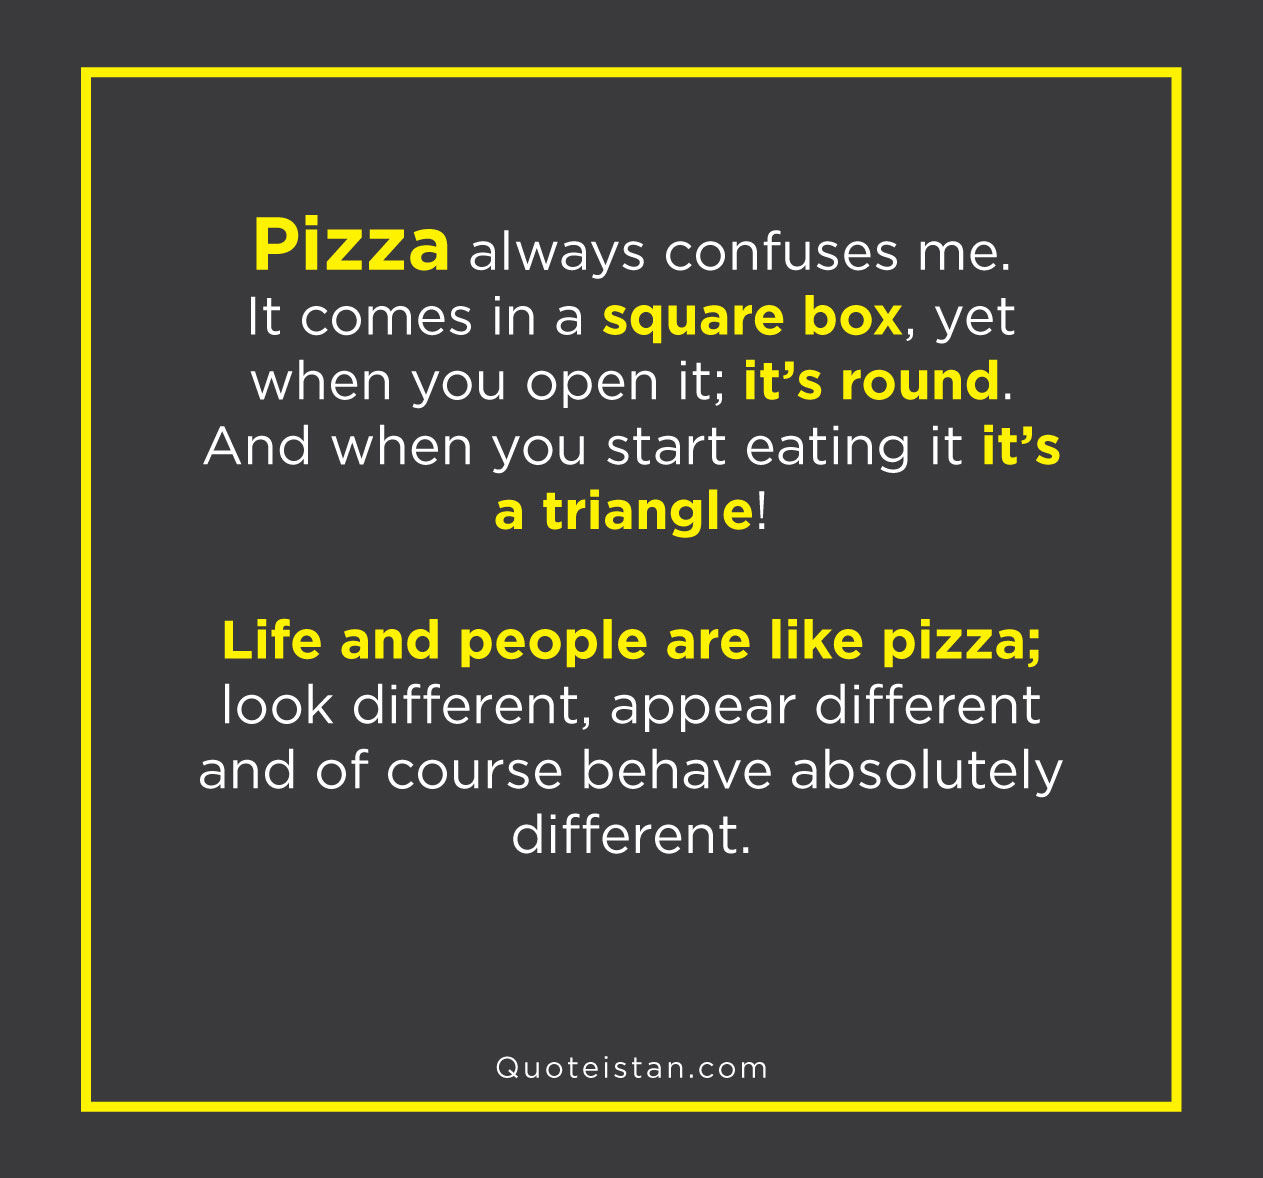 Pizza always confuses me… it comes in a square box, yet when you open it; it's round. And when you start eating it it's a triangle! Life and people are like pizza; look different, appear different and of course behave absolutely different.